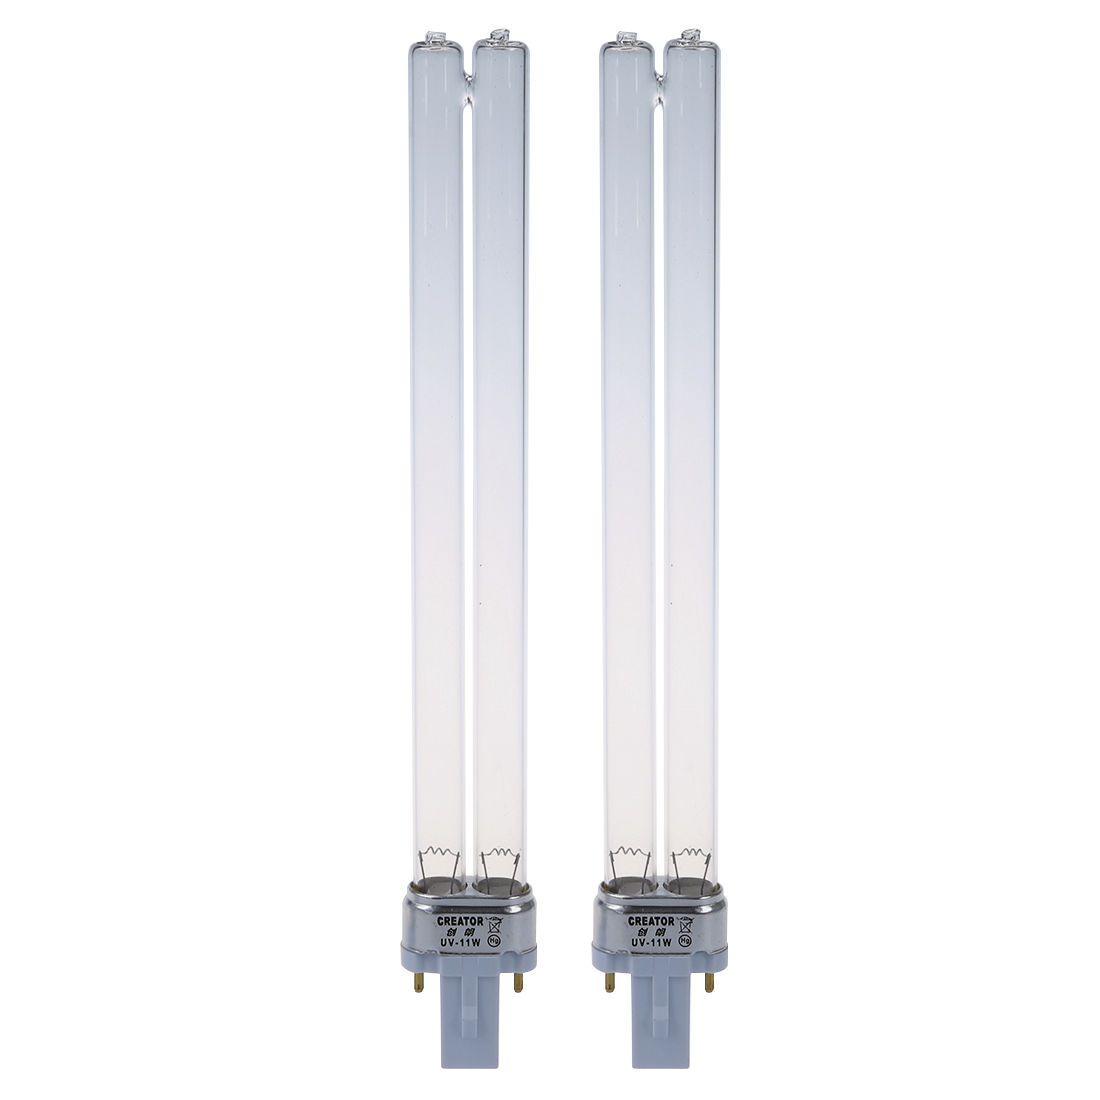 Cheapest 2pcs 11W Base Of G23 Bulb Light UV Sterilizer UV Lamp For Aquarium